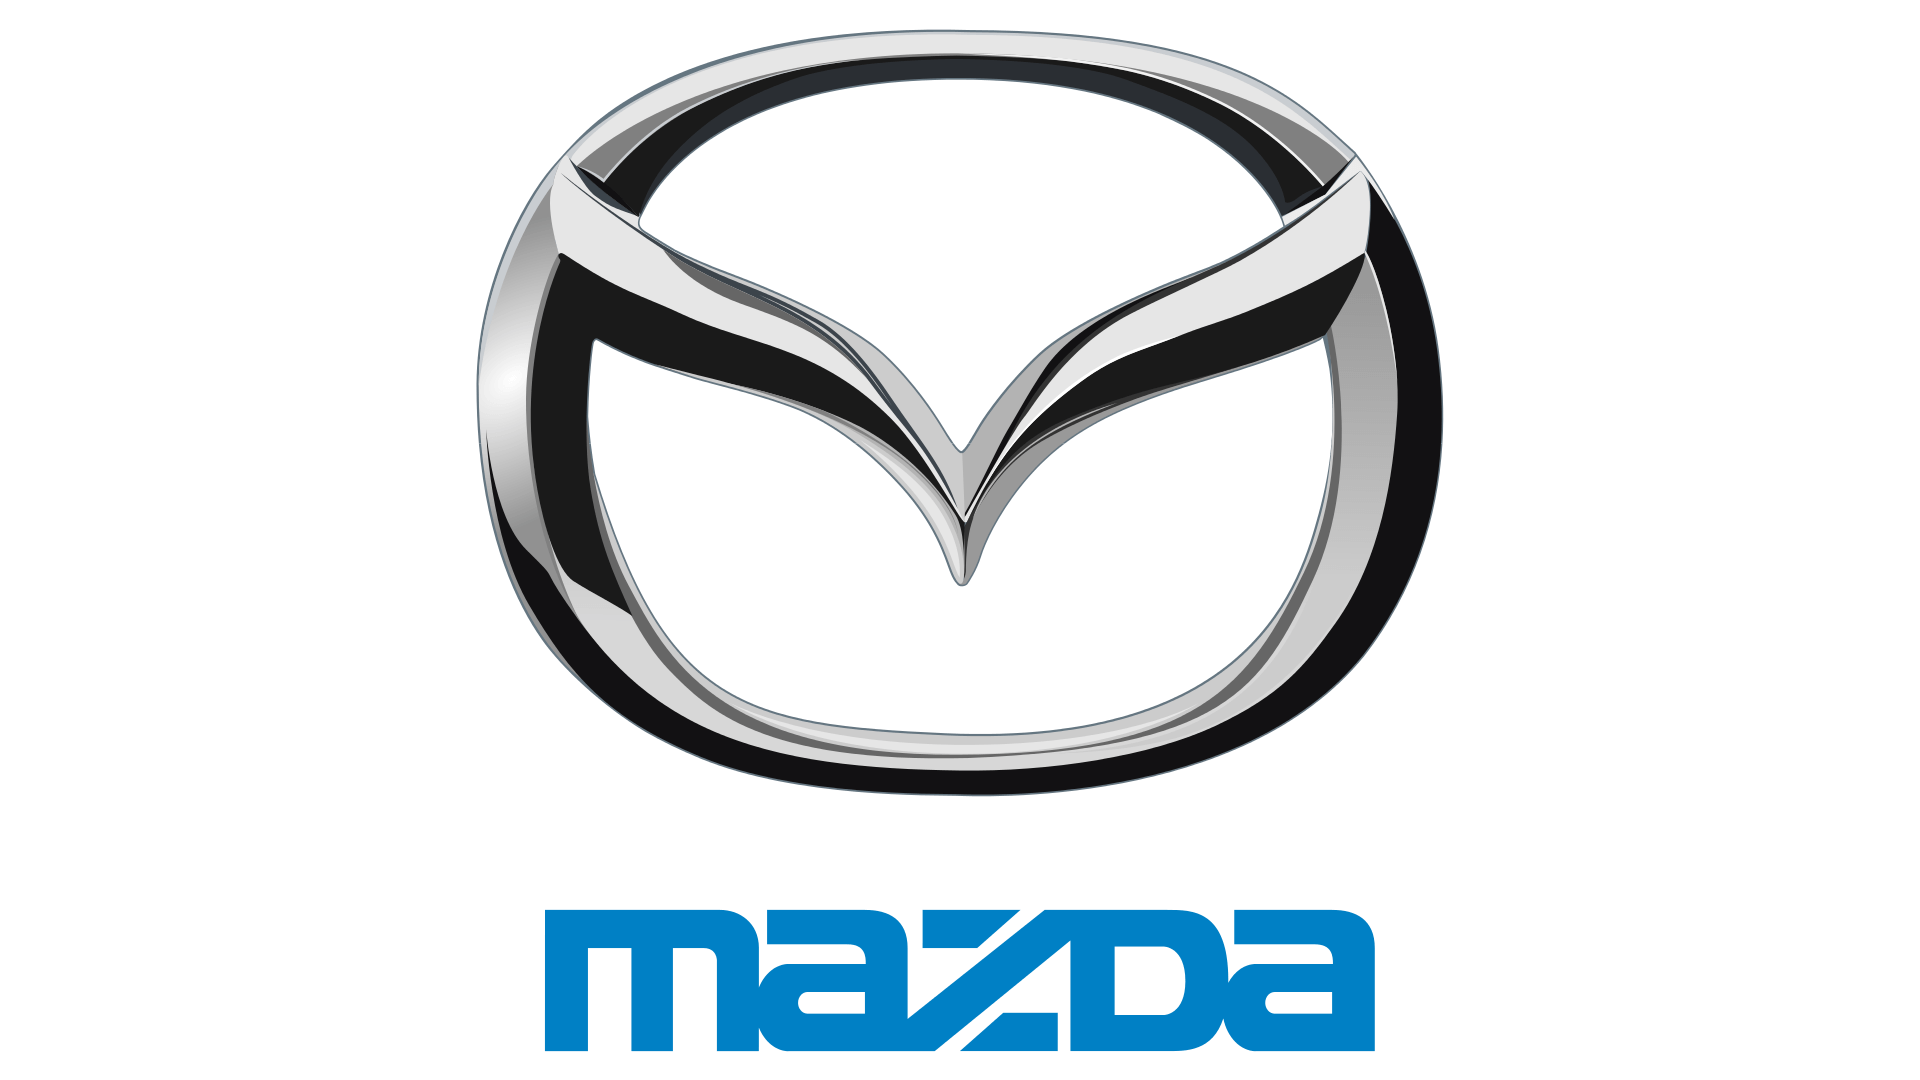 http://rpmautolease.com/wp-content/uploads/2017/08/Mazda-logo-1997-1920x1080.png